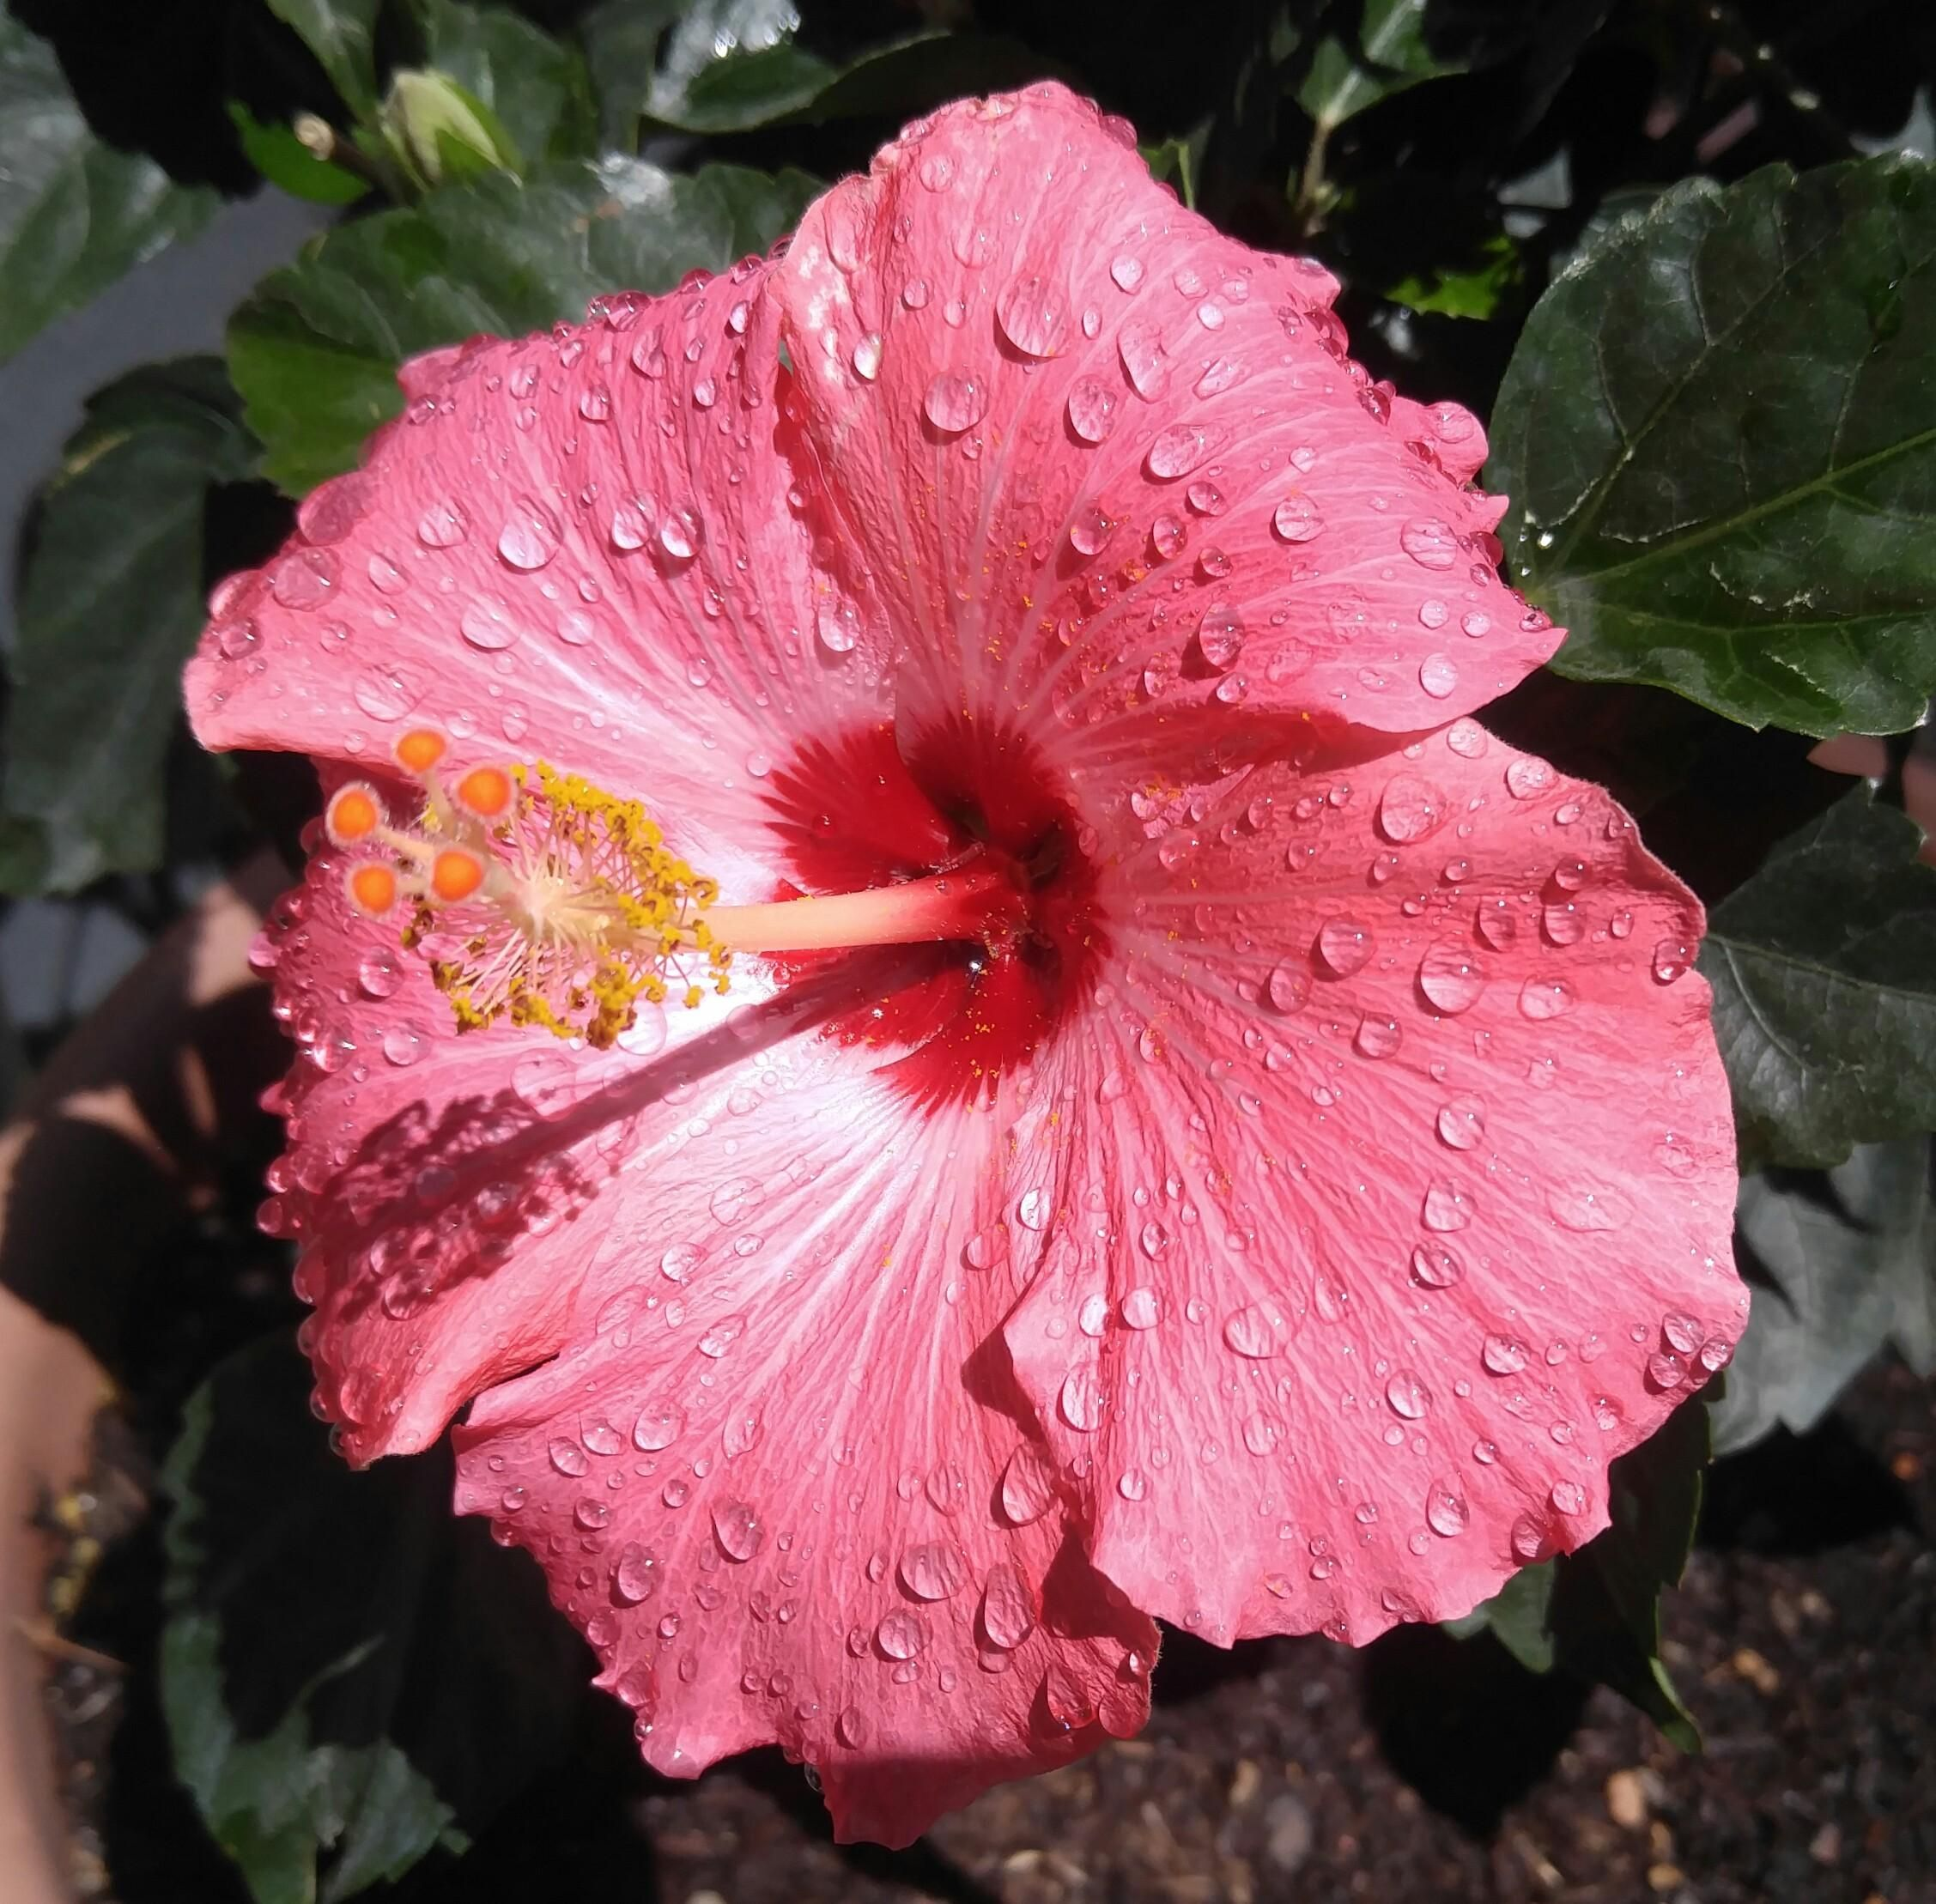 hibiscus #gardening #garden #DIY #home #flowers #roses #nature #landscaping #horticulture